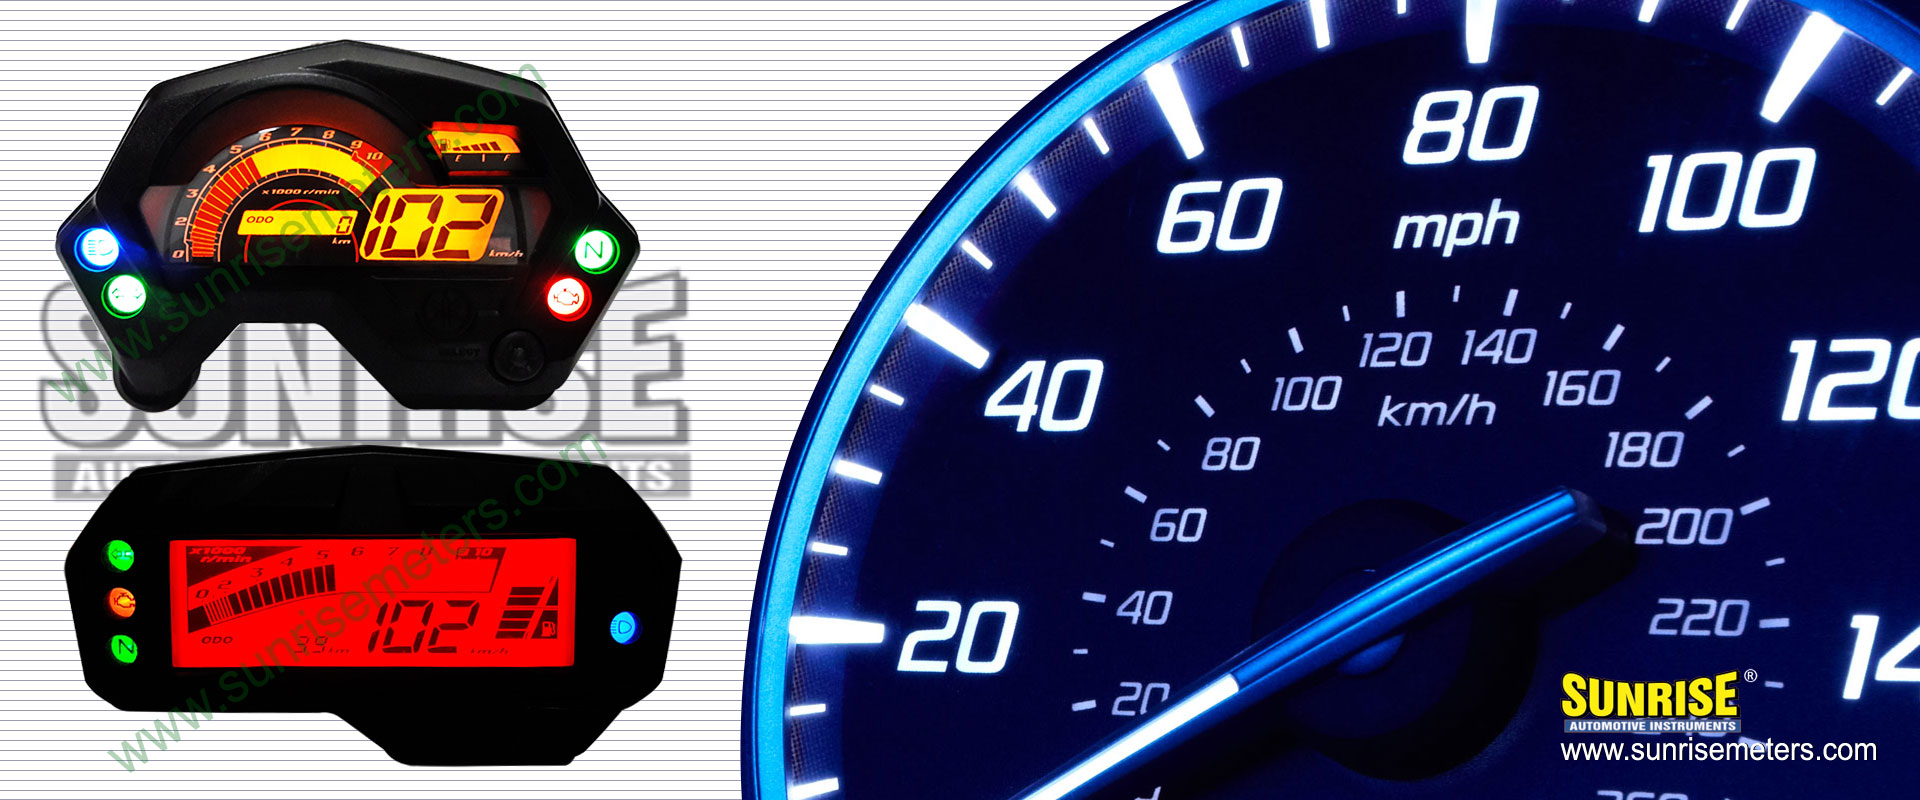 speedo meters manufacturers suppliers in india punjab ludhiana